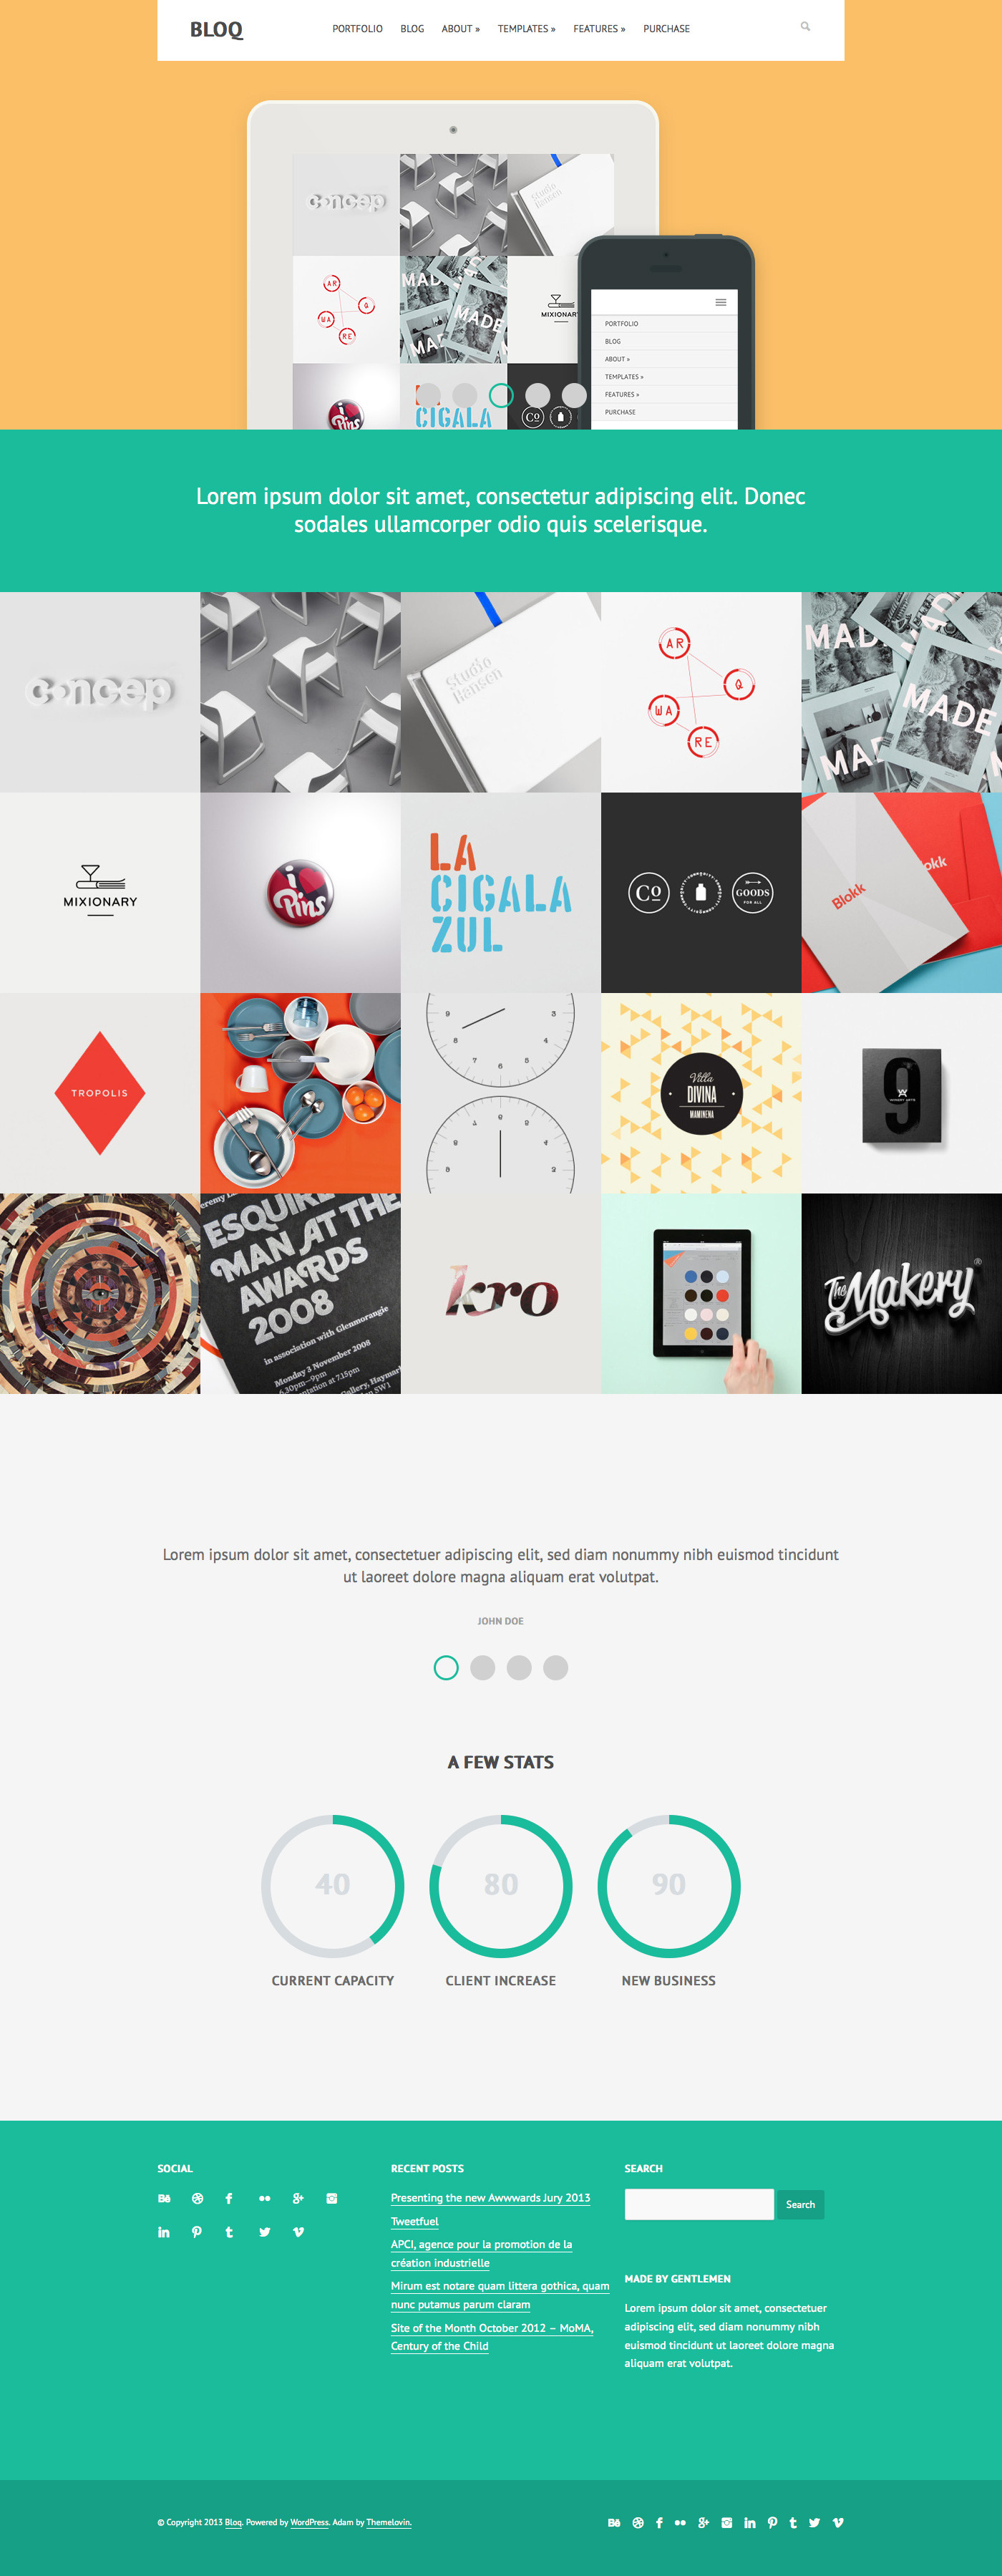 http://0.s3.envato.com/files/57884111/theme-preview/02-bloq-item-preview.jpg